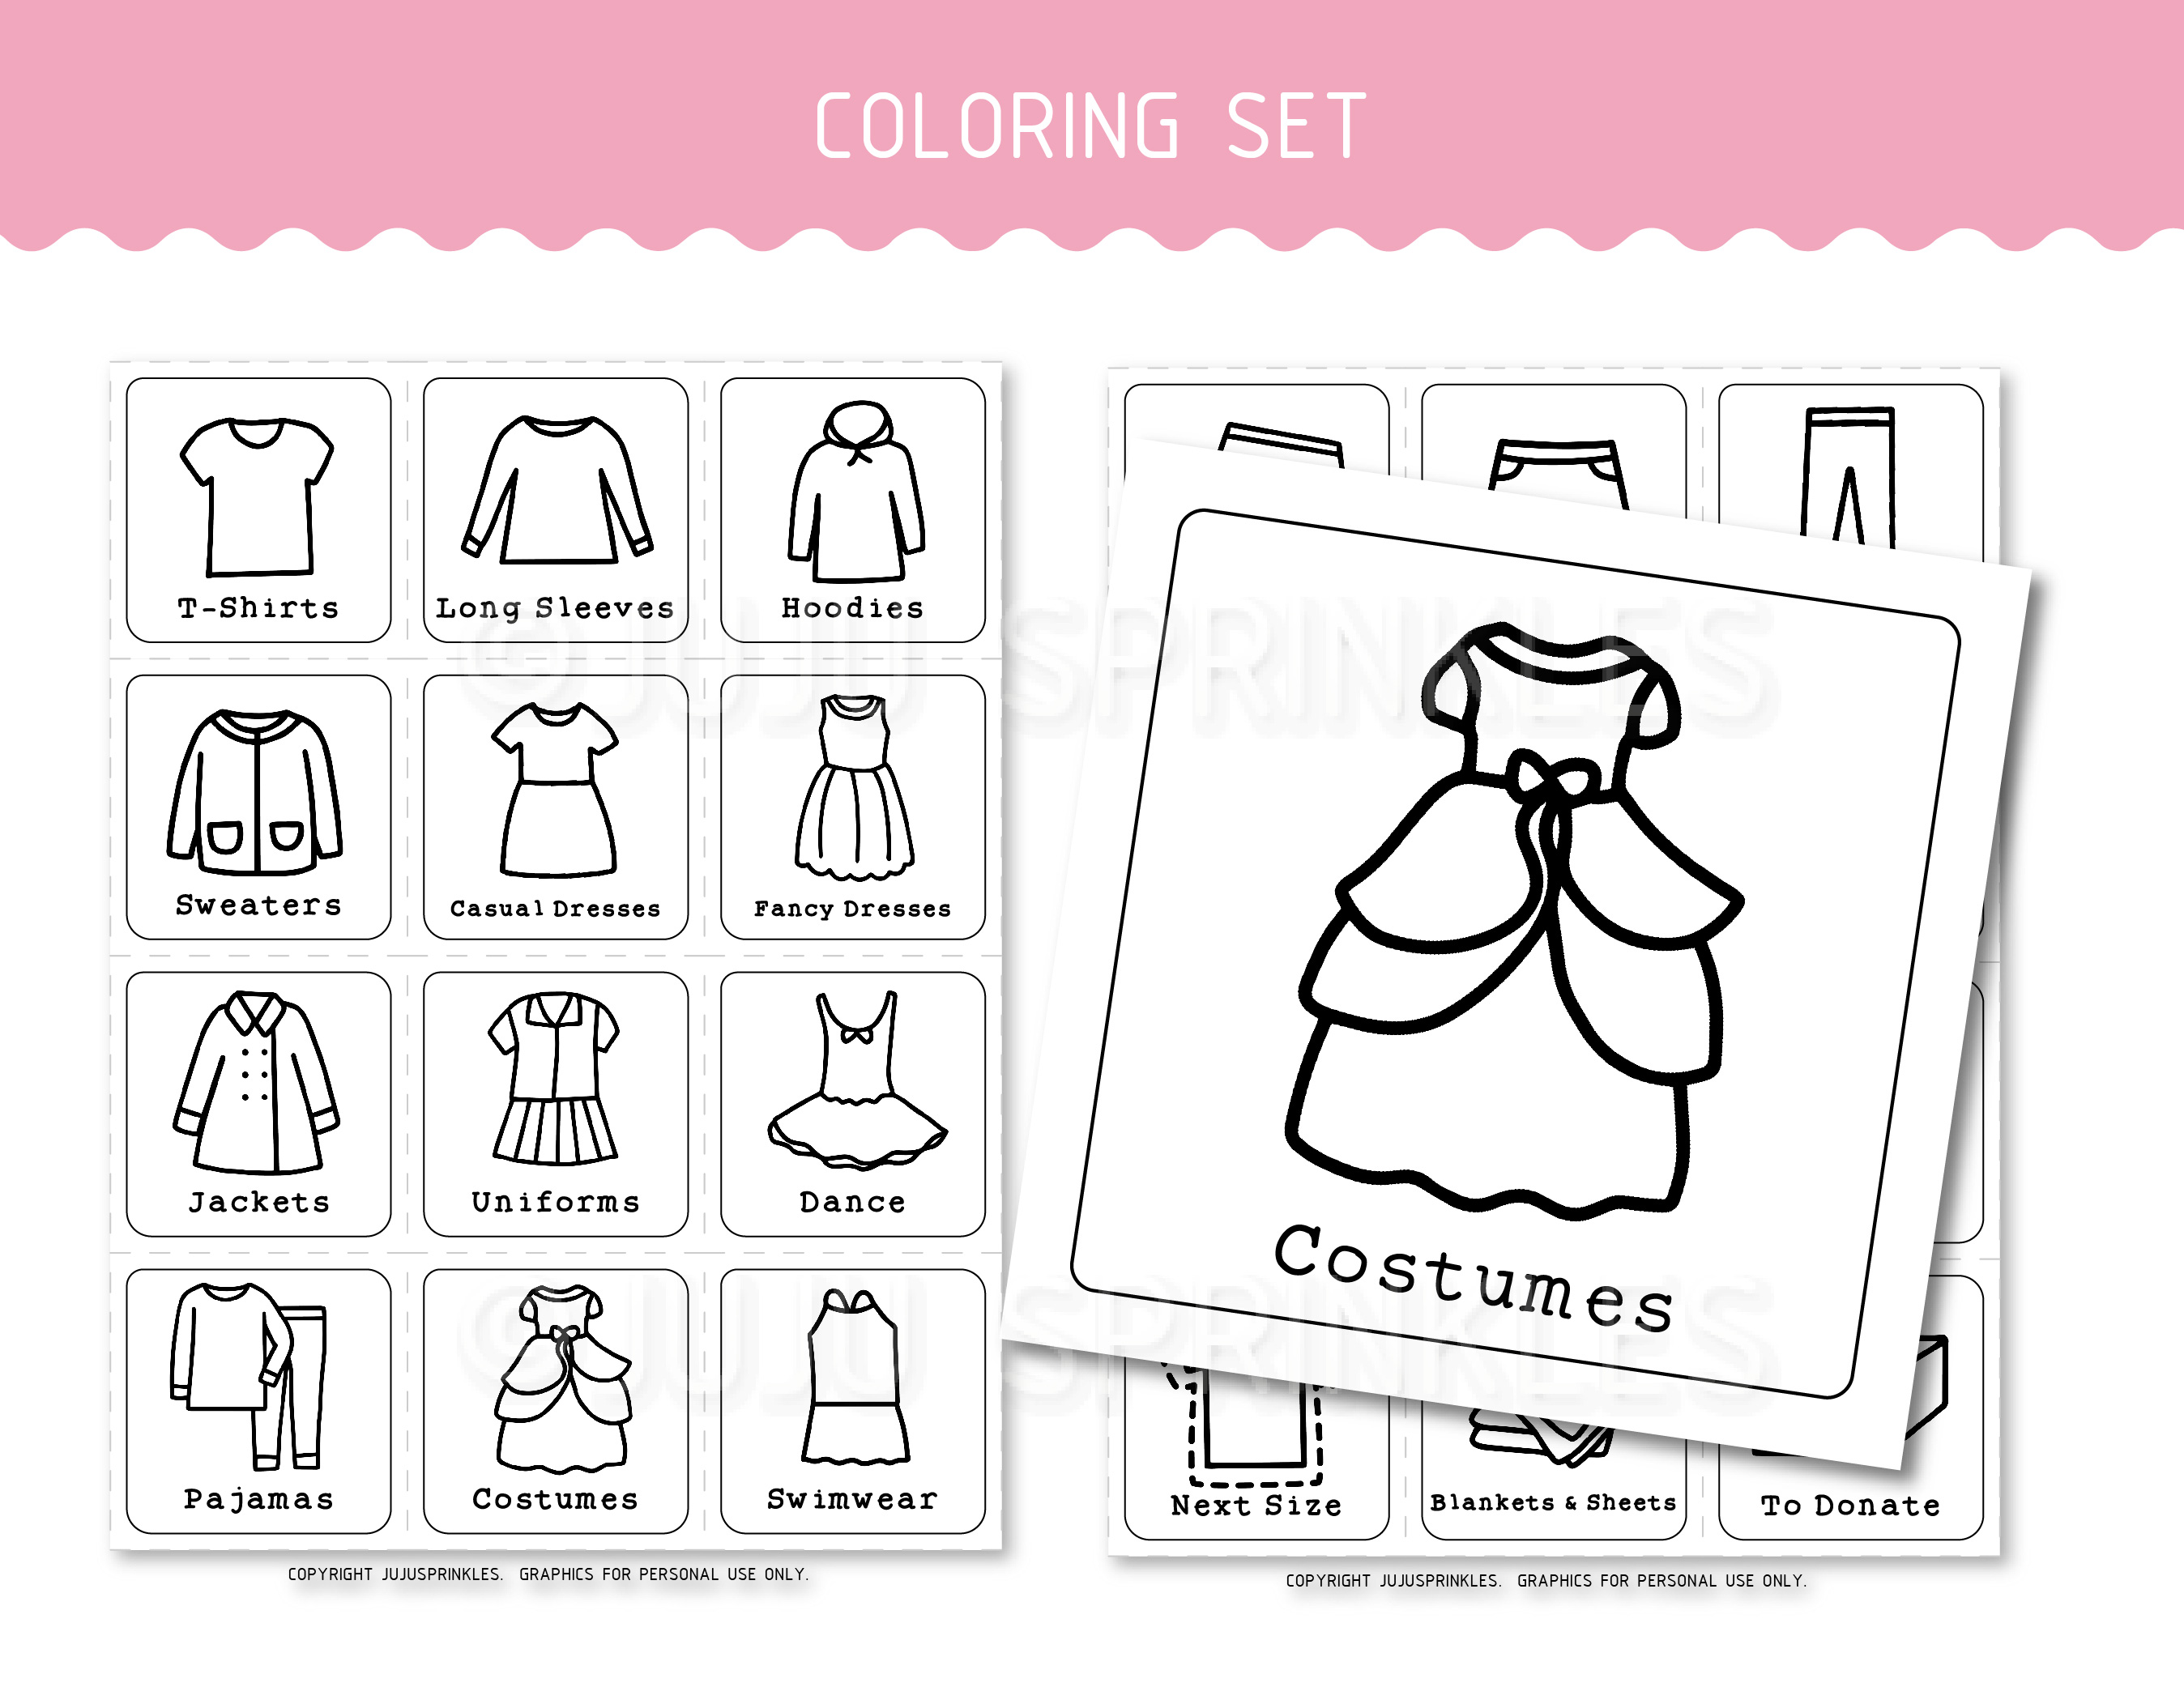 photograph regarding Printable Clothing Labels titled Small children Closet Organizational Labels Printable - Ladies